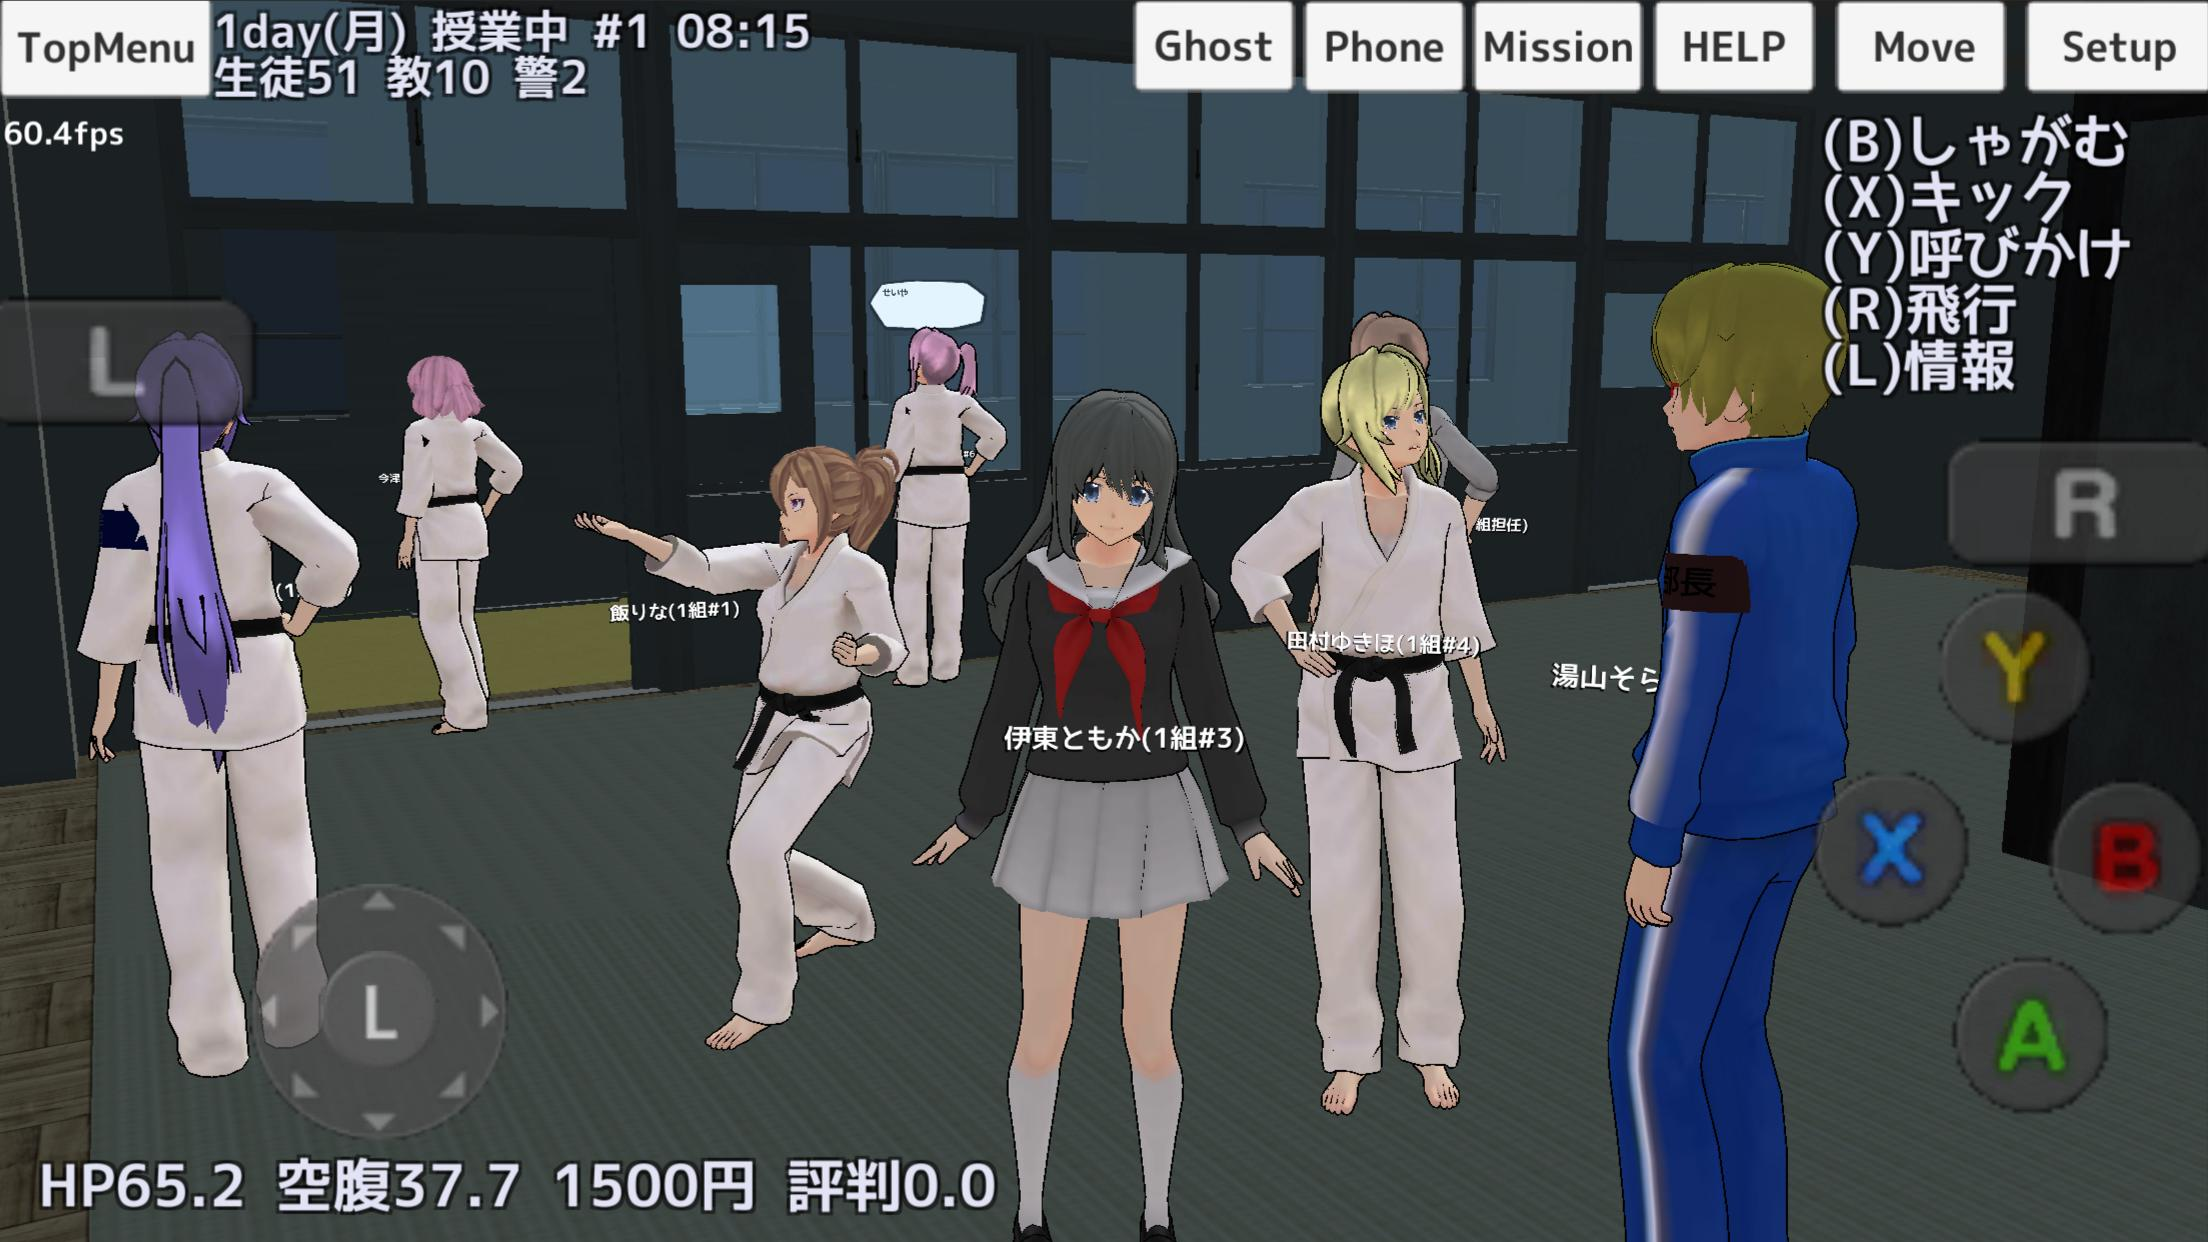 School Girls Simulator for Android - APK Download